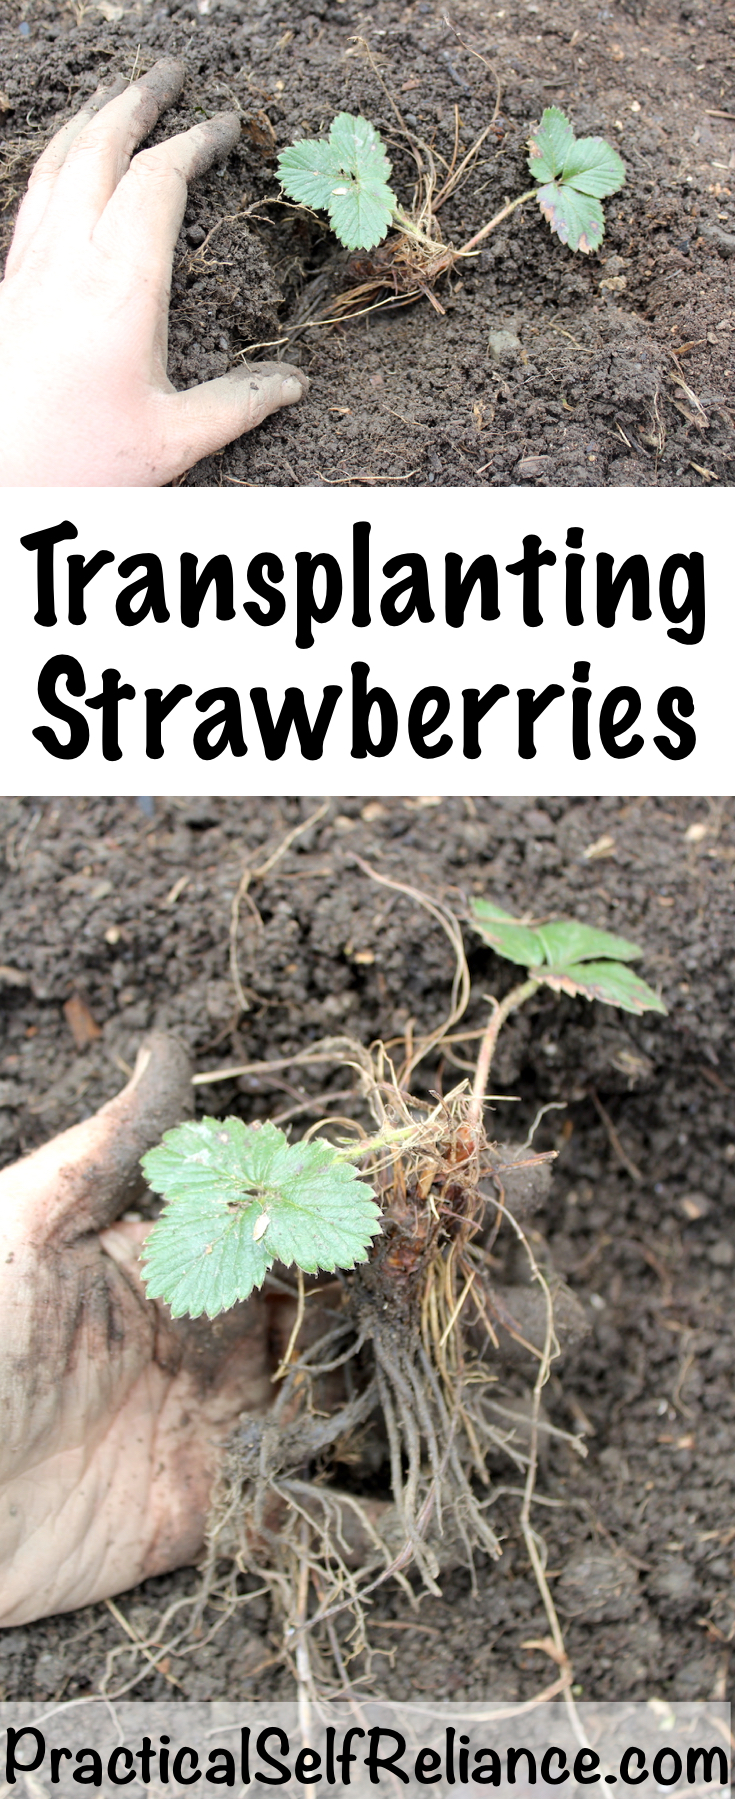 Transplanting Strawberries ~ How to Grow Strawberries #strawberries #growingstrawberries #gardening #organicgardening #howtogrow #gardeningtips #homesteading #homestead #selfreliant